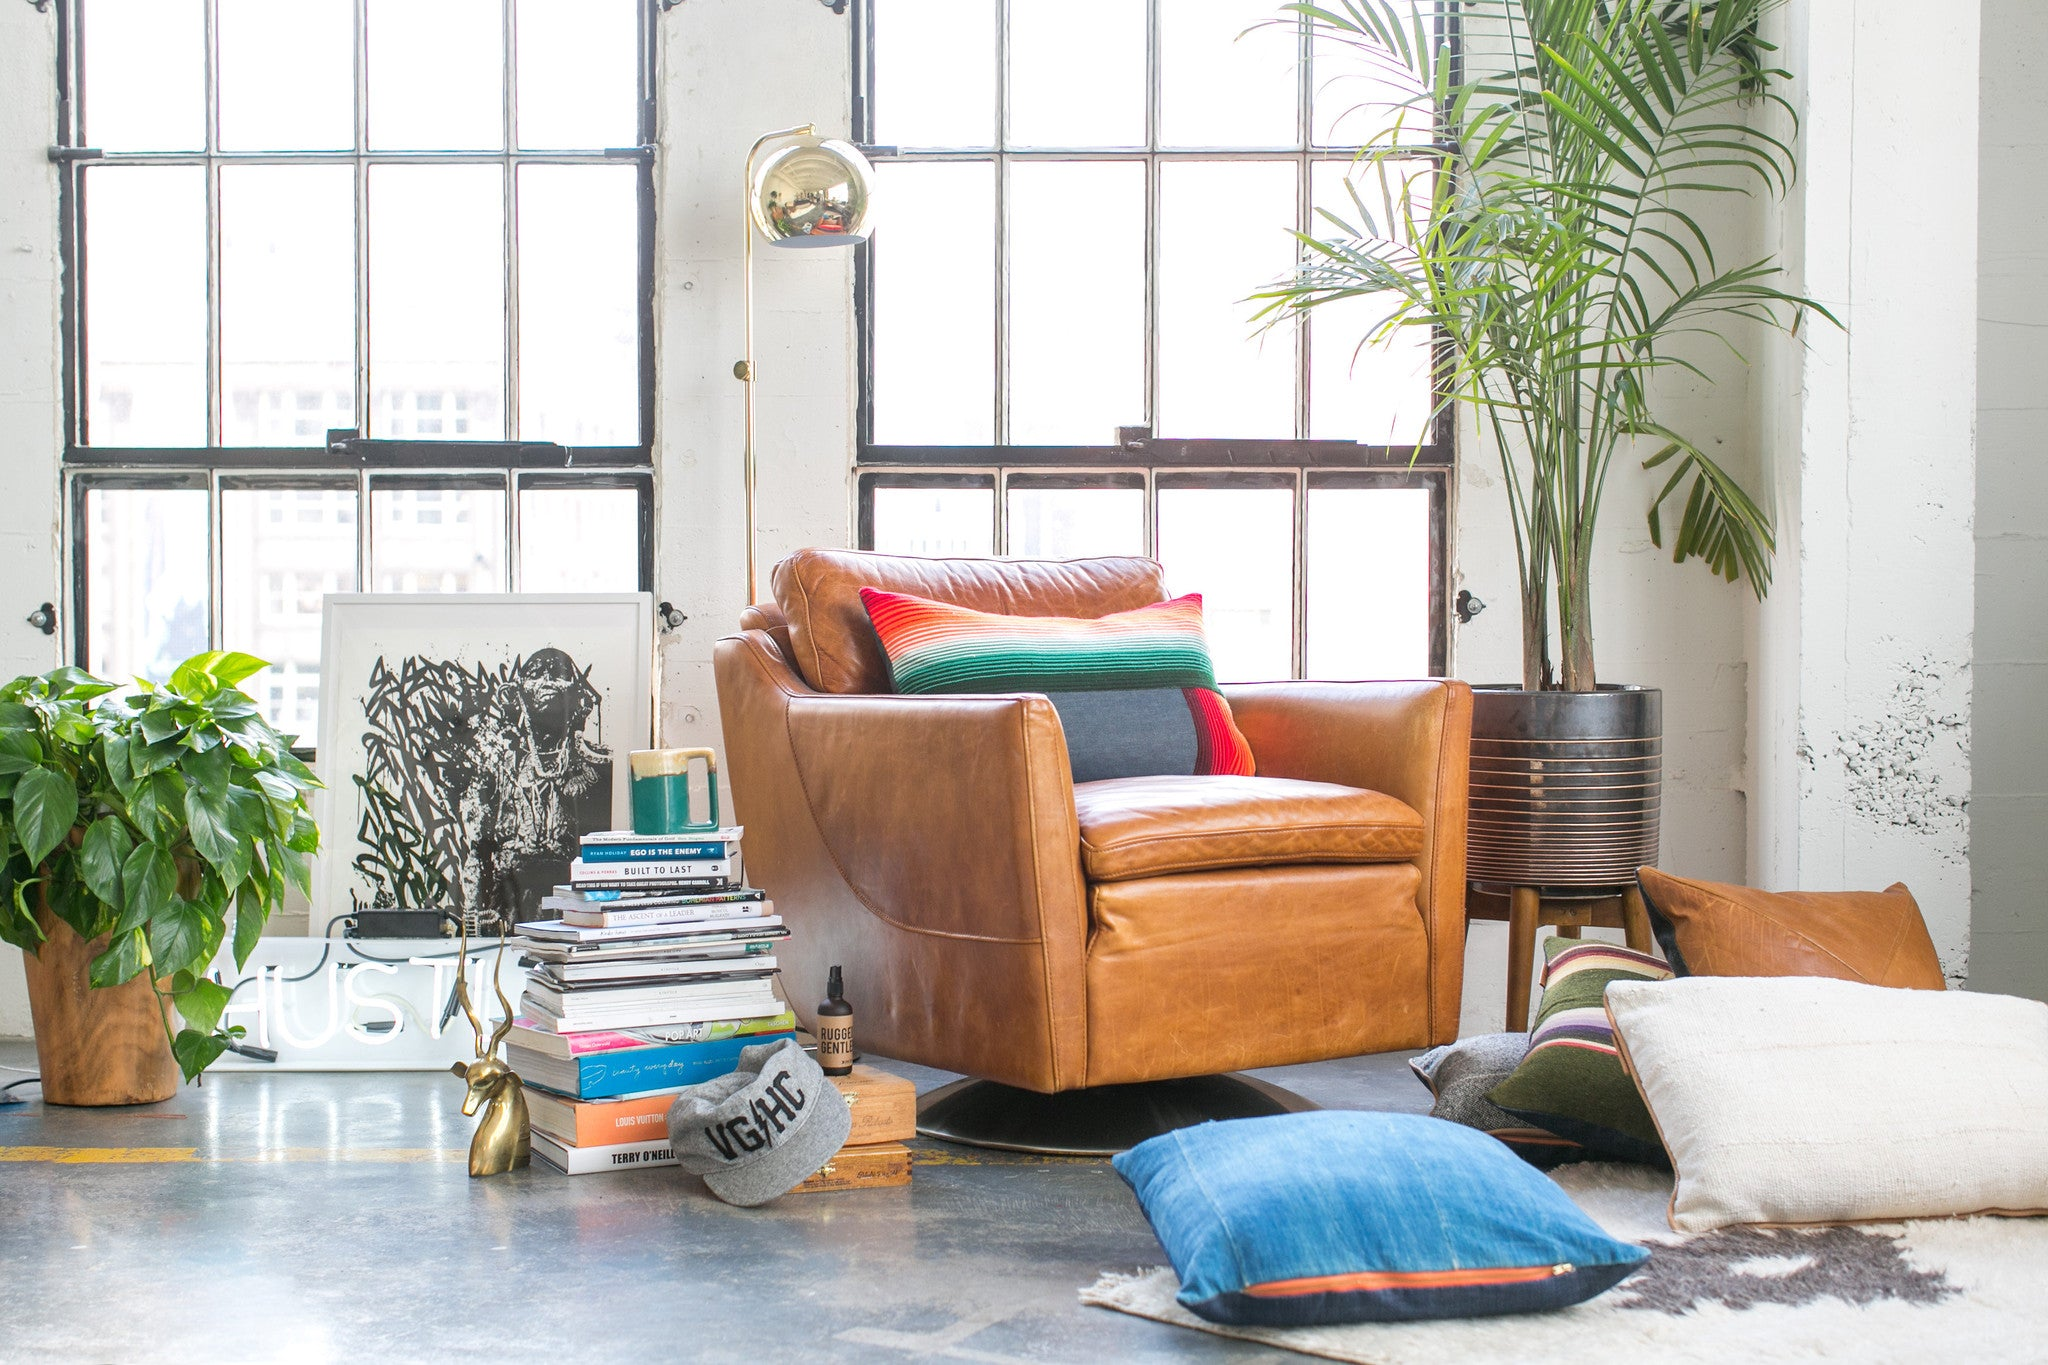 Awesome So Forget The Fancy Words That No One Really Understands Or Cares About,  And Focus On The Decorating Tips That Truly Count, And Turn That Frat Boy  Flat Into ...